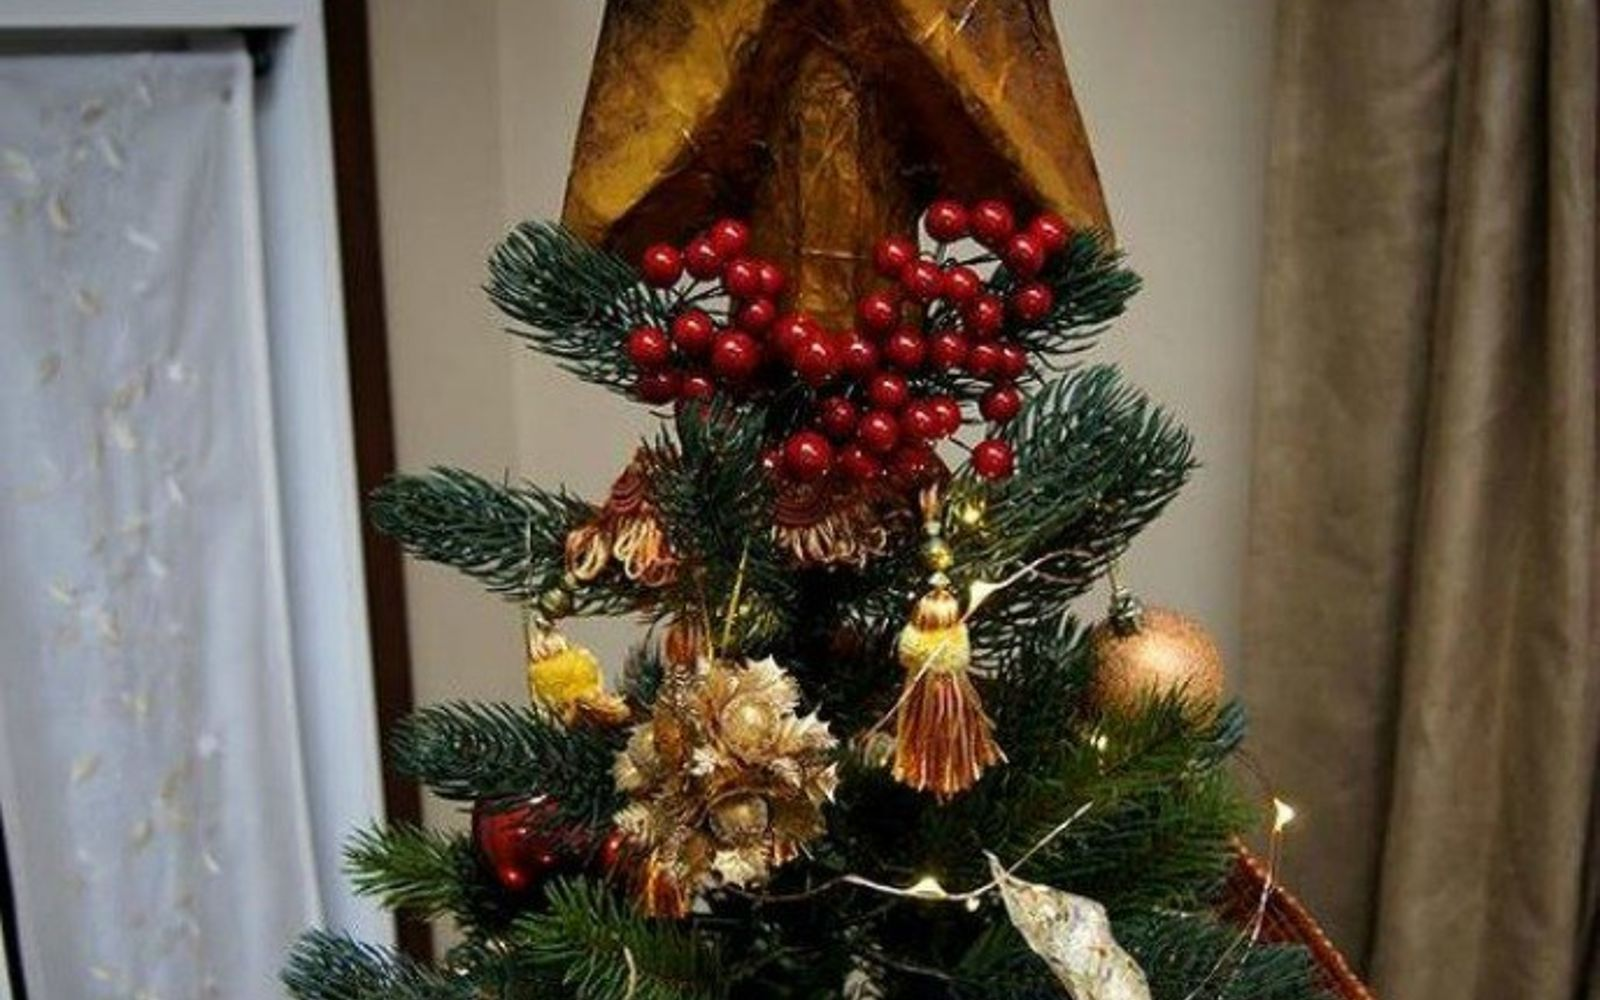 s don t stop at ornaments these tree decorating ideas are even better, christmas decorations, seasonal holiday decor, Cut cardboard into a shimmering gold star